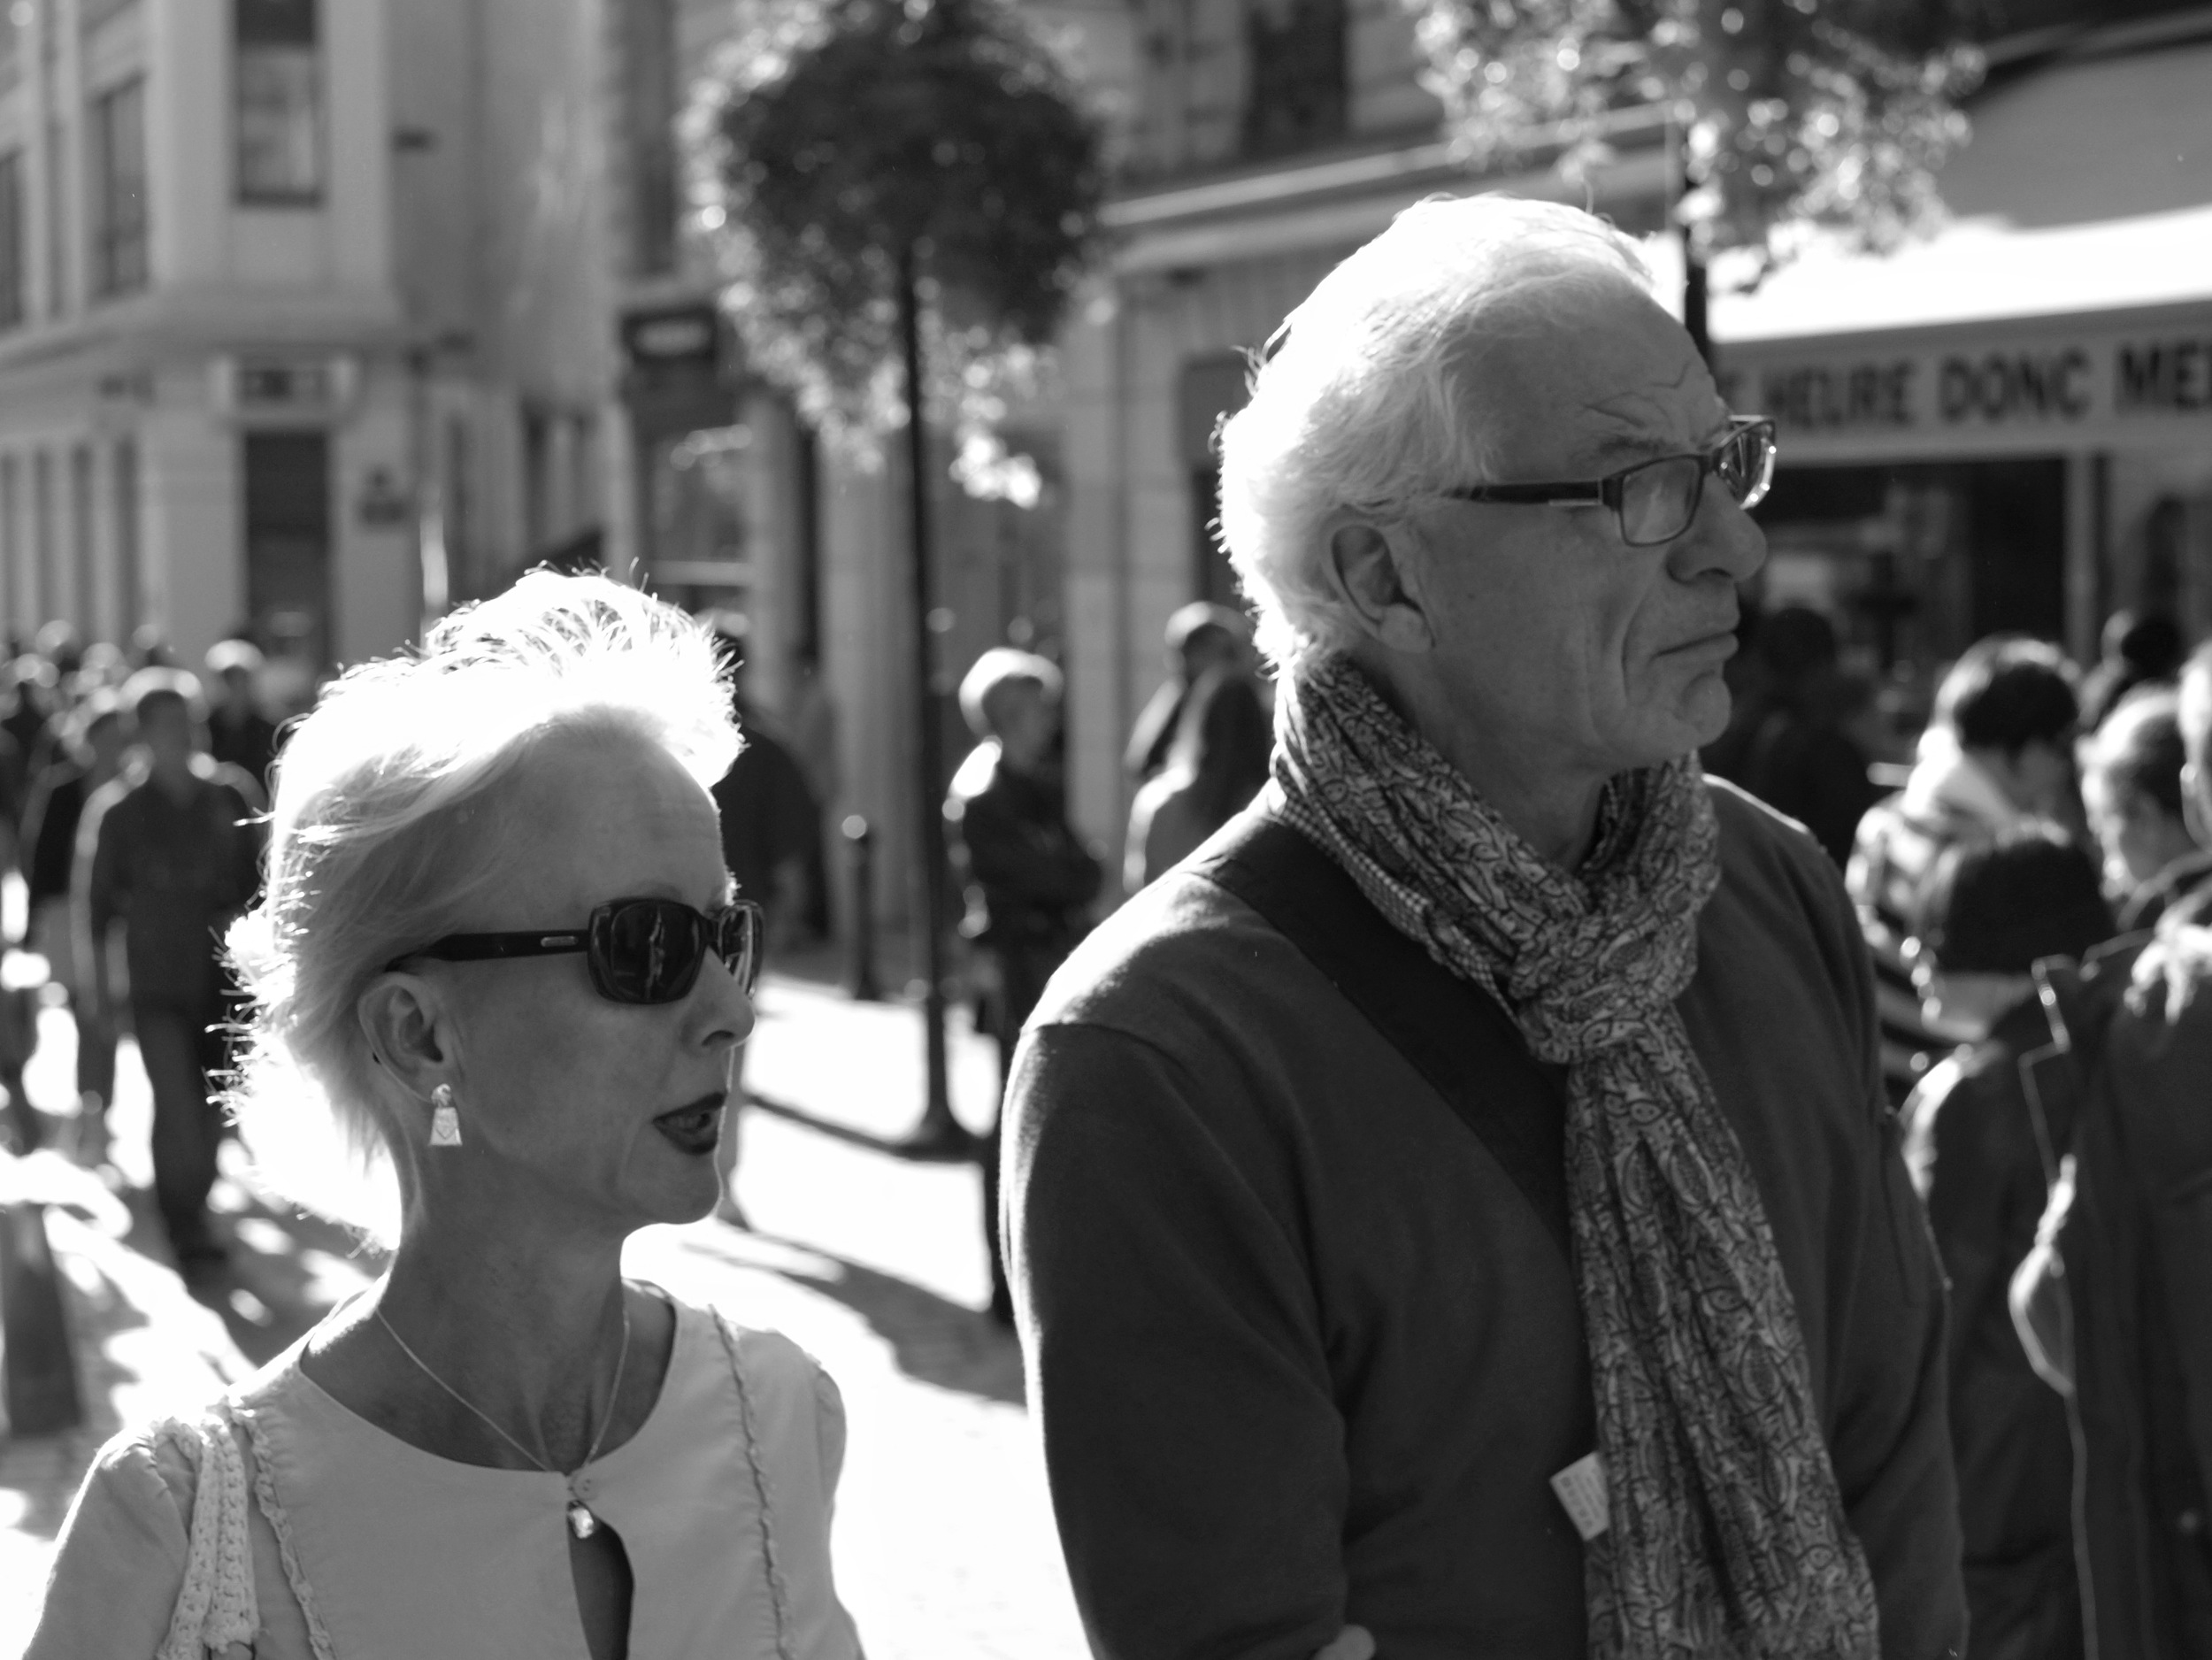 Couple walking in Nantes - Fuji X-Pro1